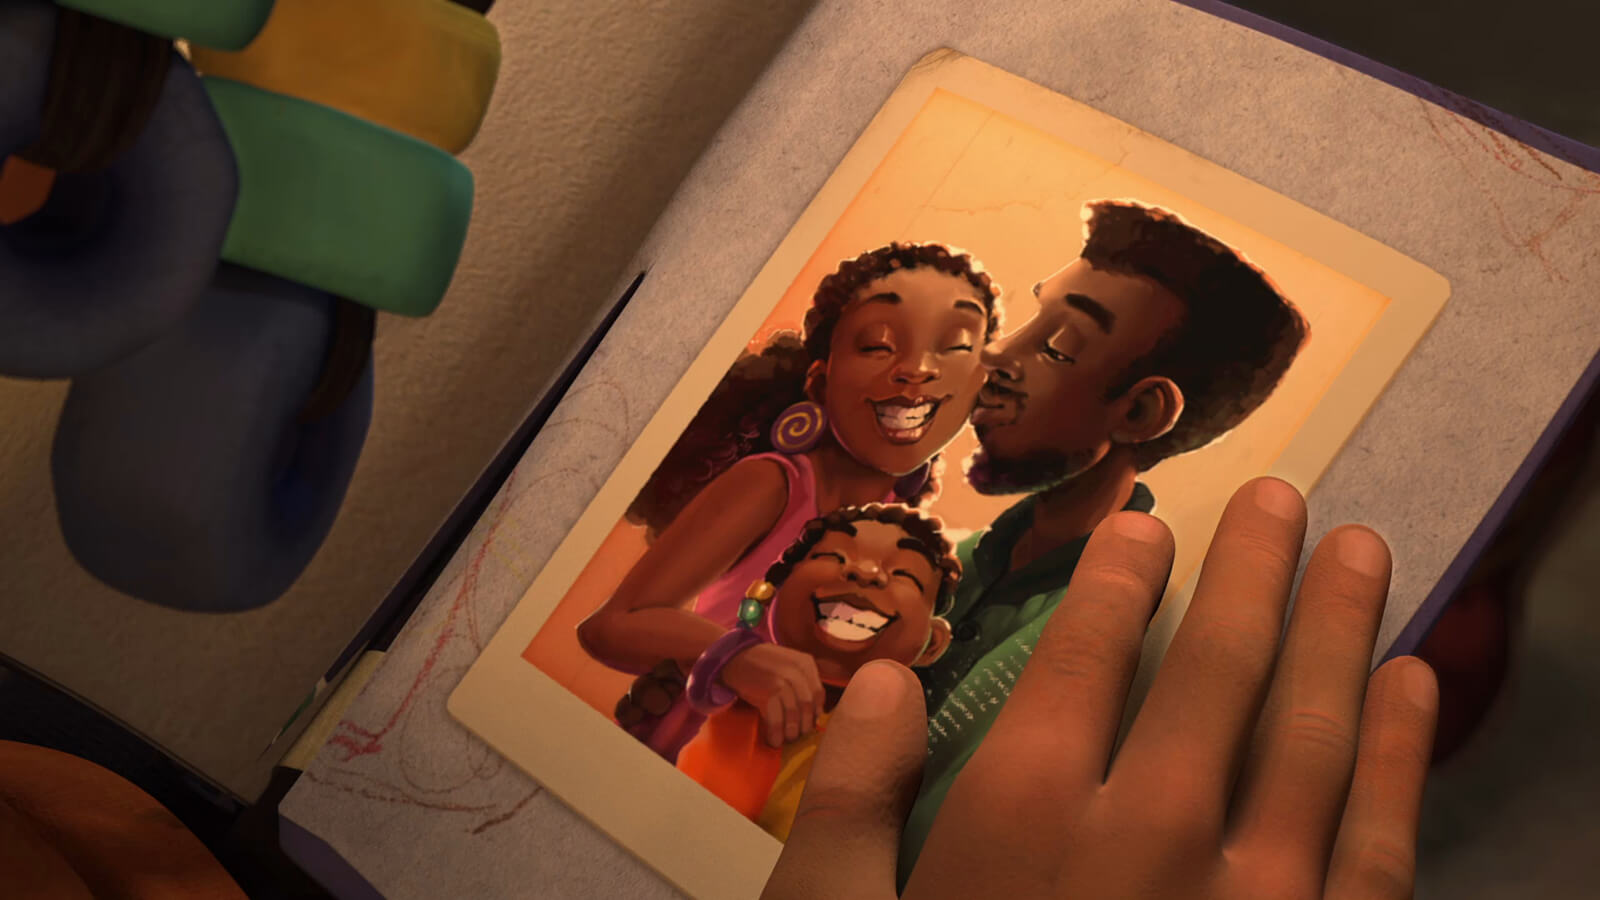 A hand is on a scrapbook containing a photo of a family, with a man kissing a smiling woman and a smiling girl below them